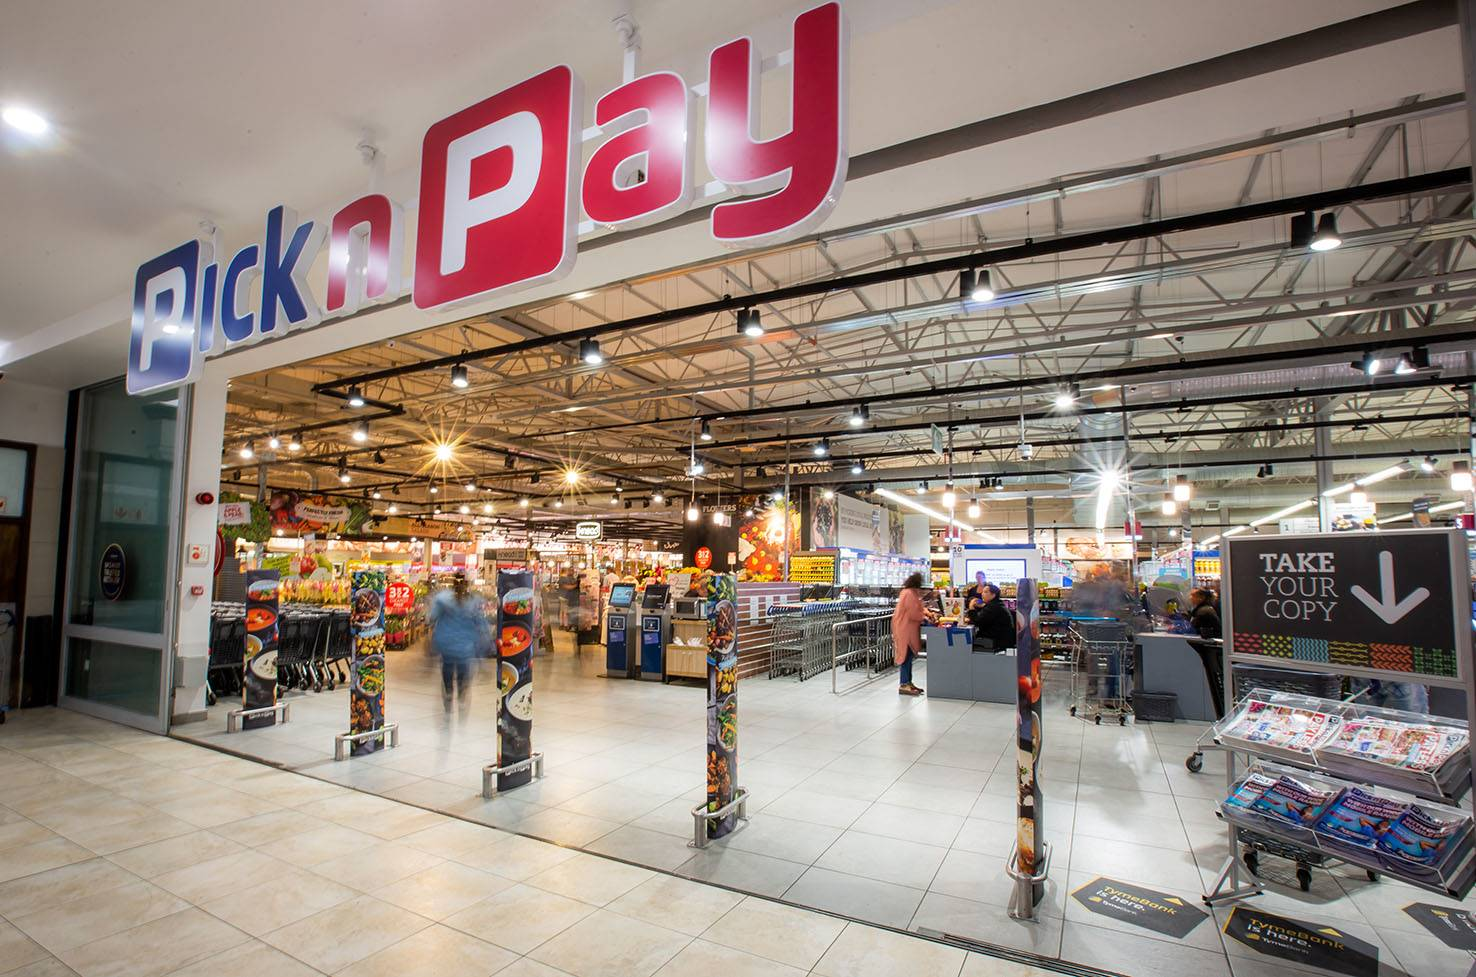 Pick n Pay has agreed to immediately allow all small businesses, as well as black-owned supermarkets, to trade in malls where it has exclusivity agreements.